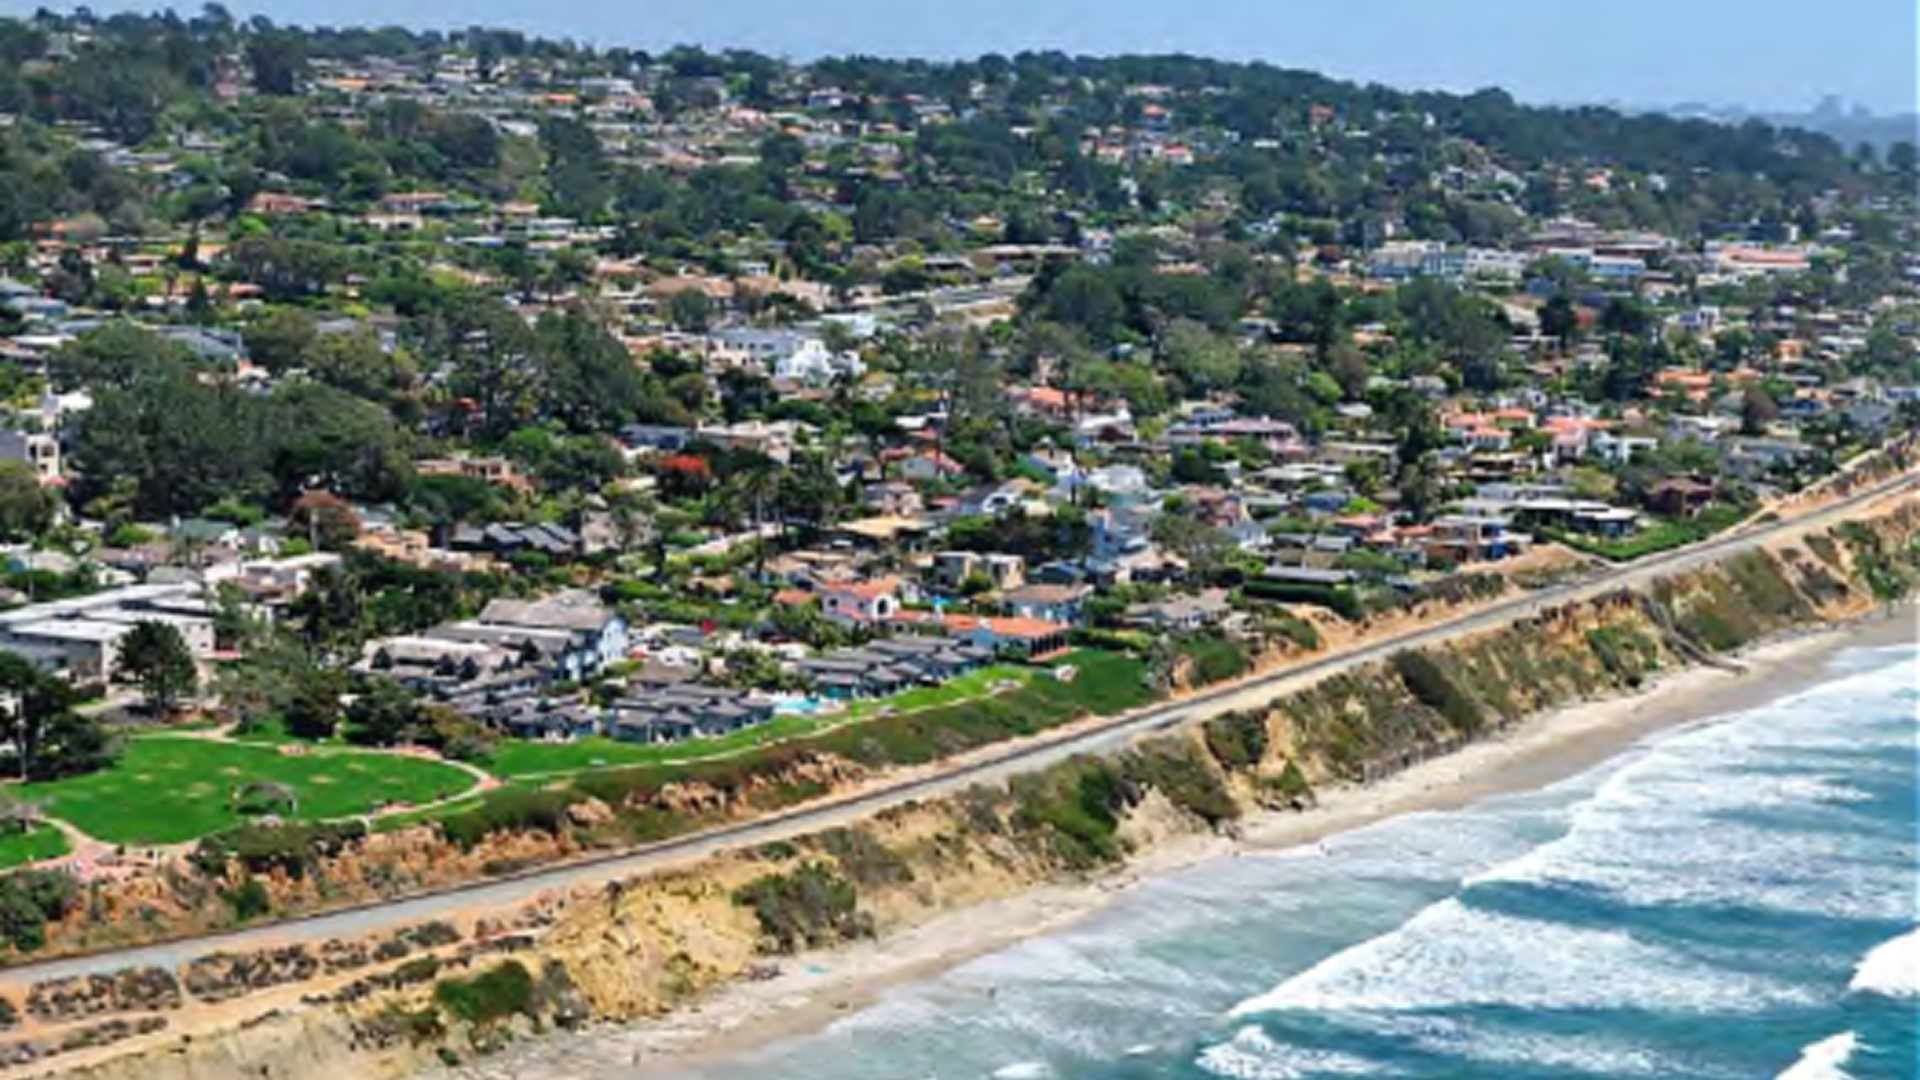 The city of Del Mar released this photo in outlining the fencing plan for the Del Mar bluffs.